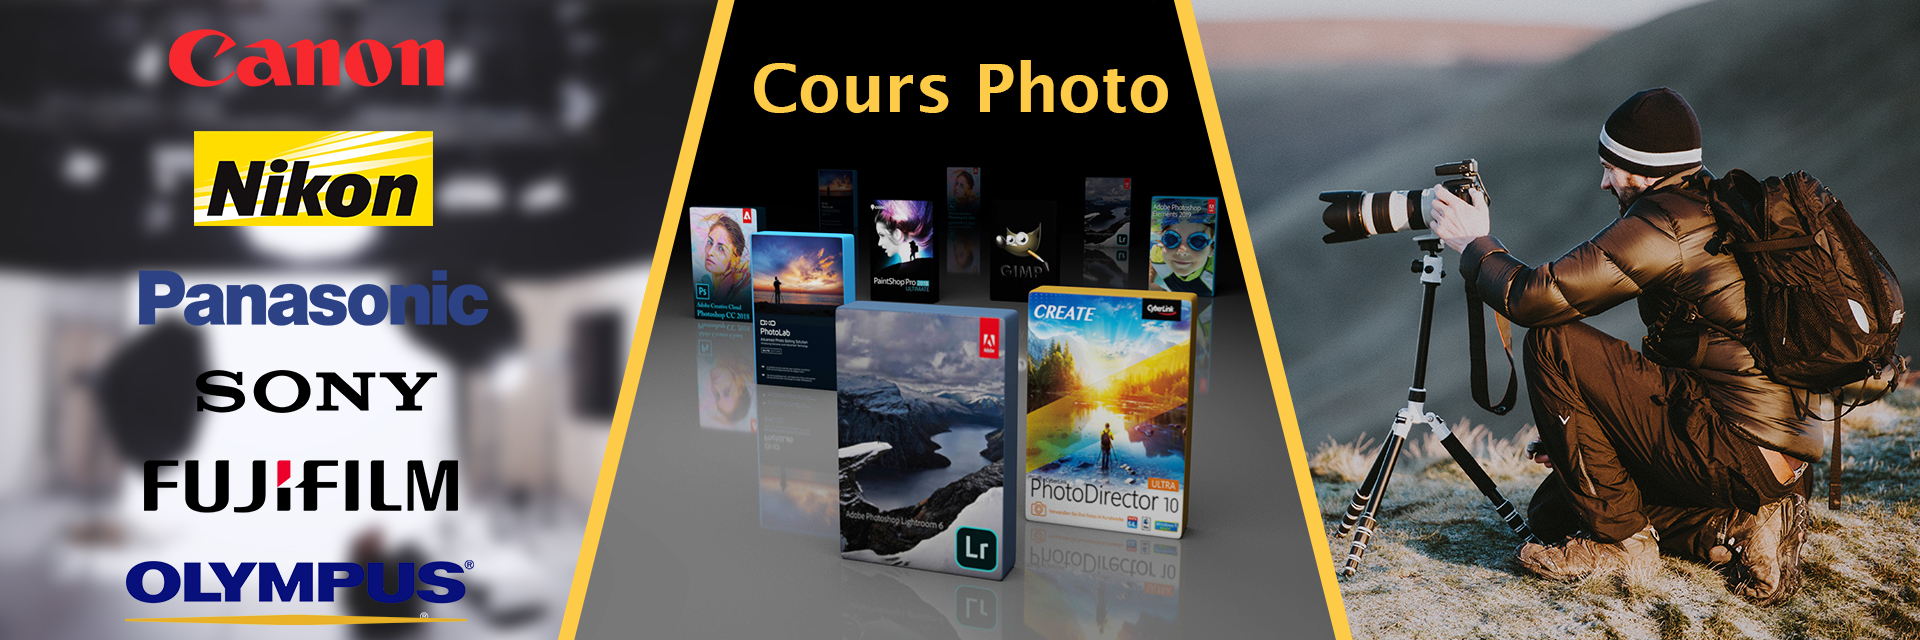 Cours Photo PA FORMATION